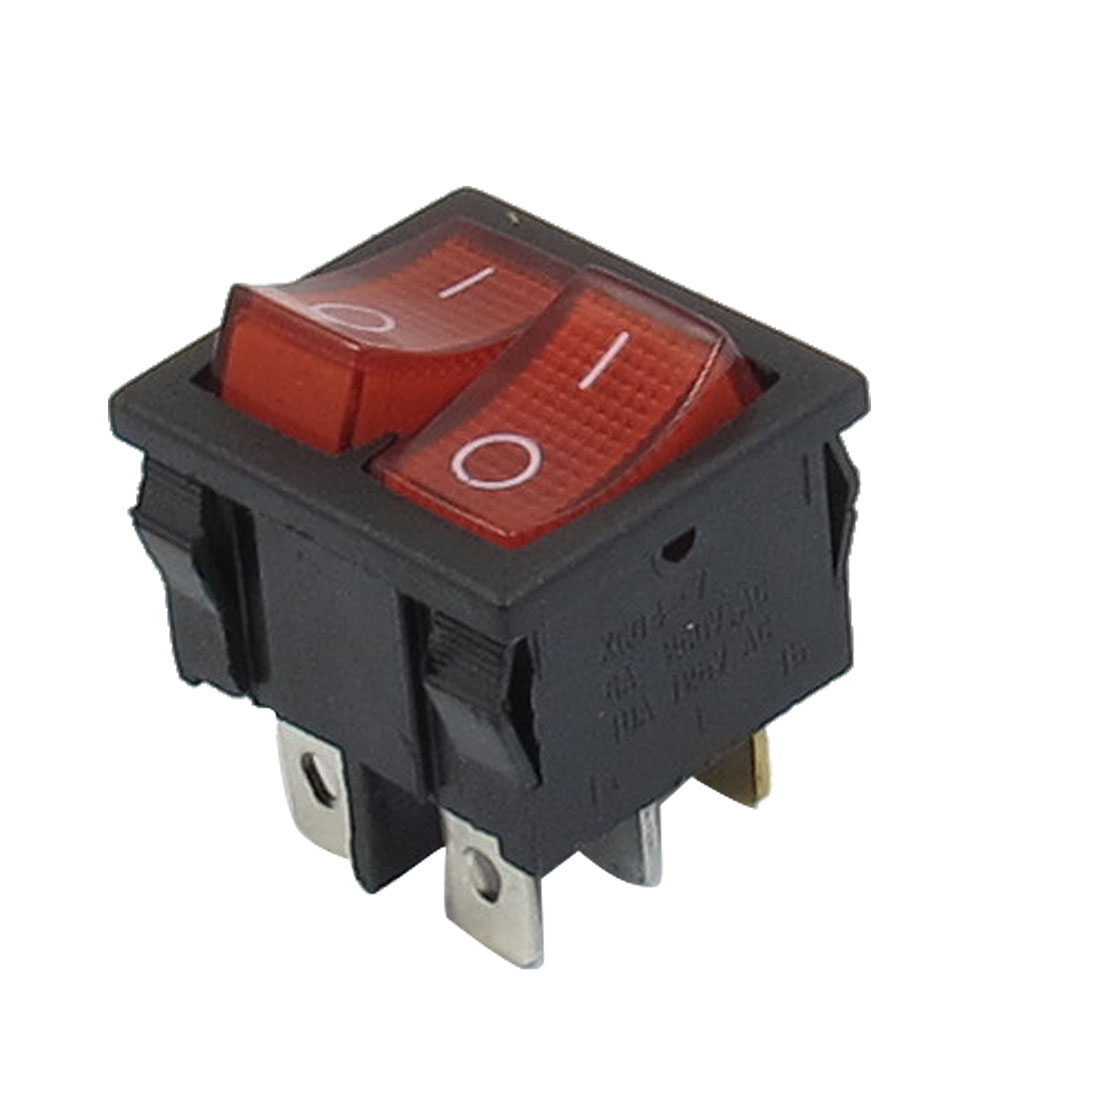 Red Illuminated Light On/Off SPST Boat Rocker Switch 6A/250V 10A/125V AC